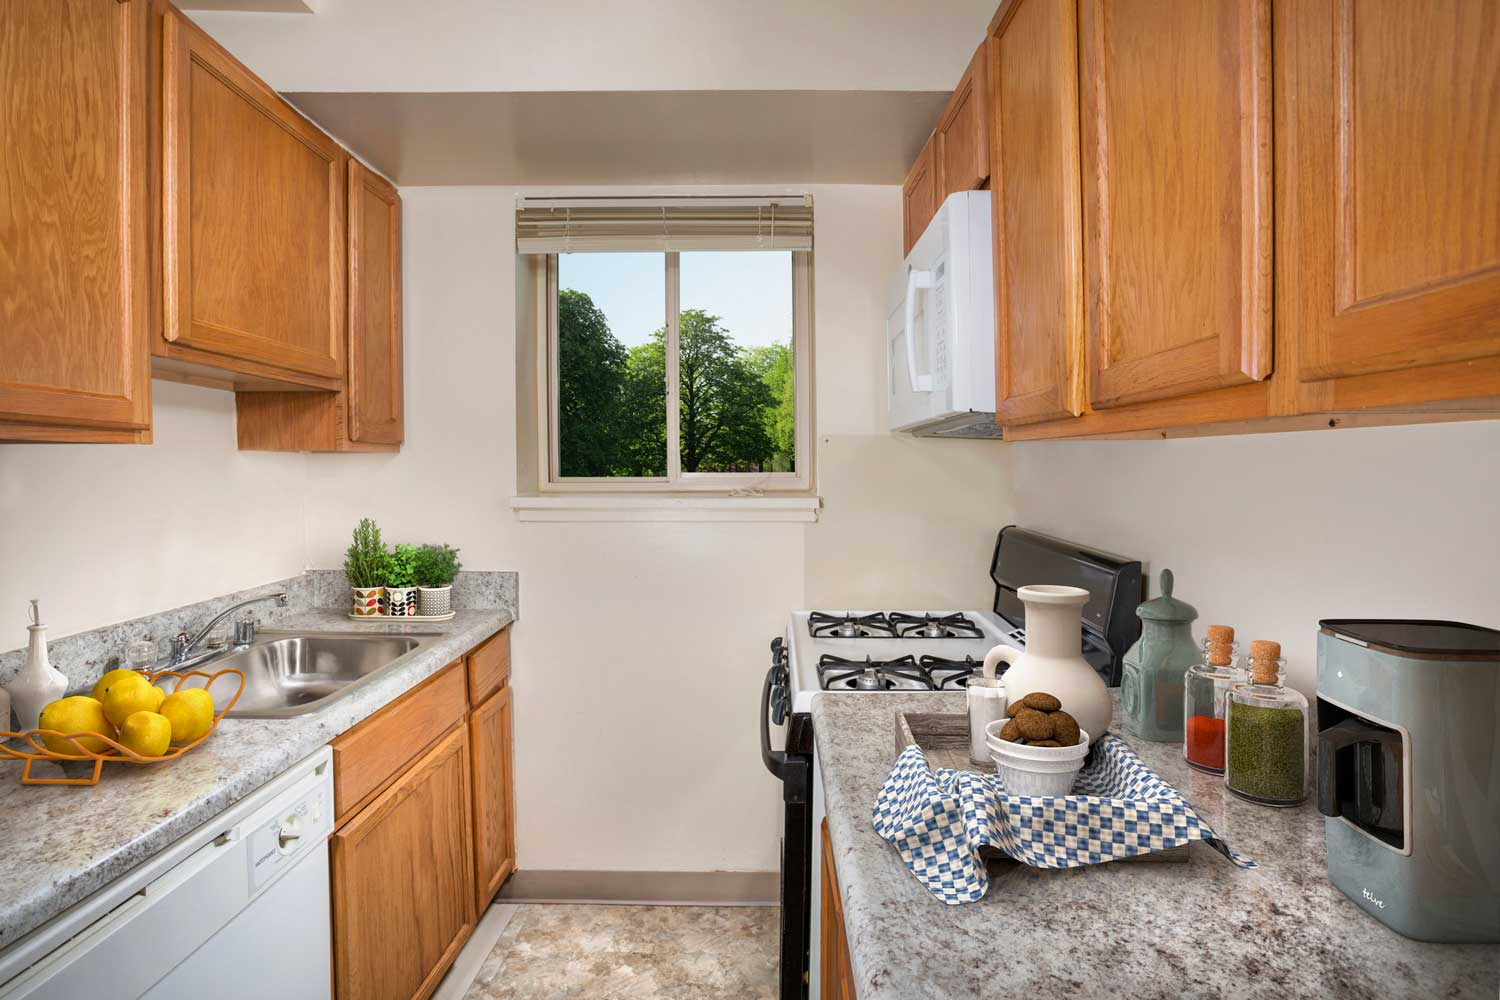 Renovated kitchens available at Woodmont Park Apartments in Alexandria, VA